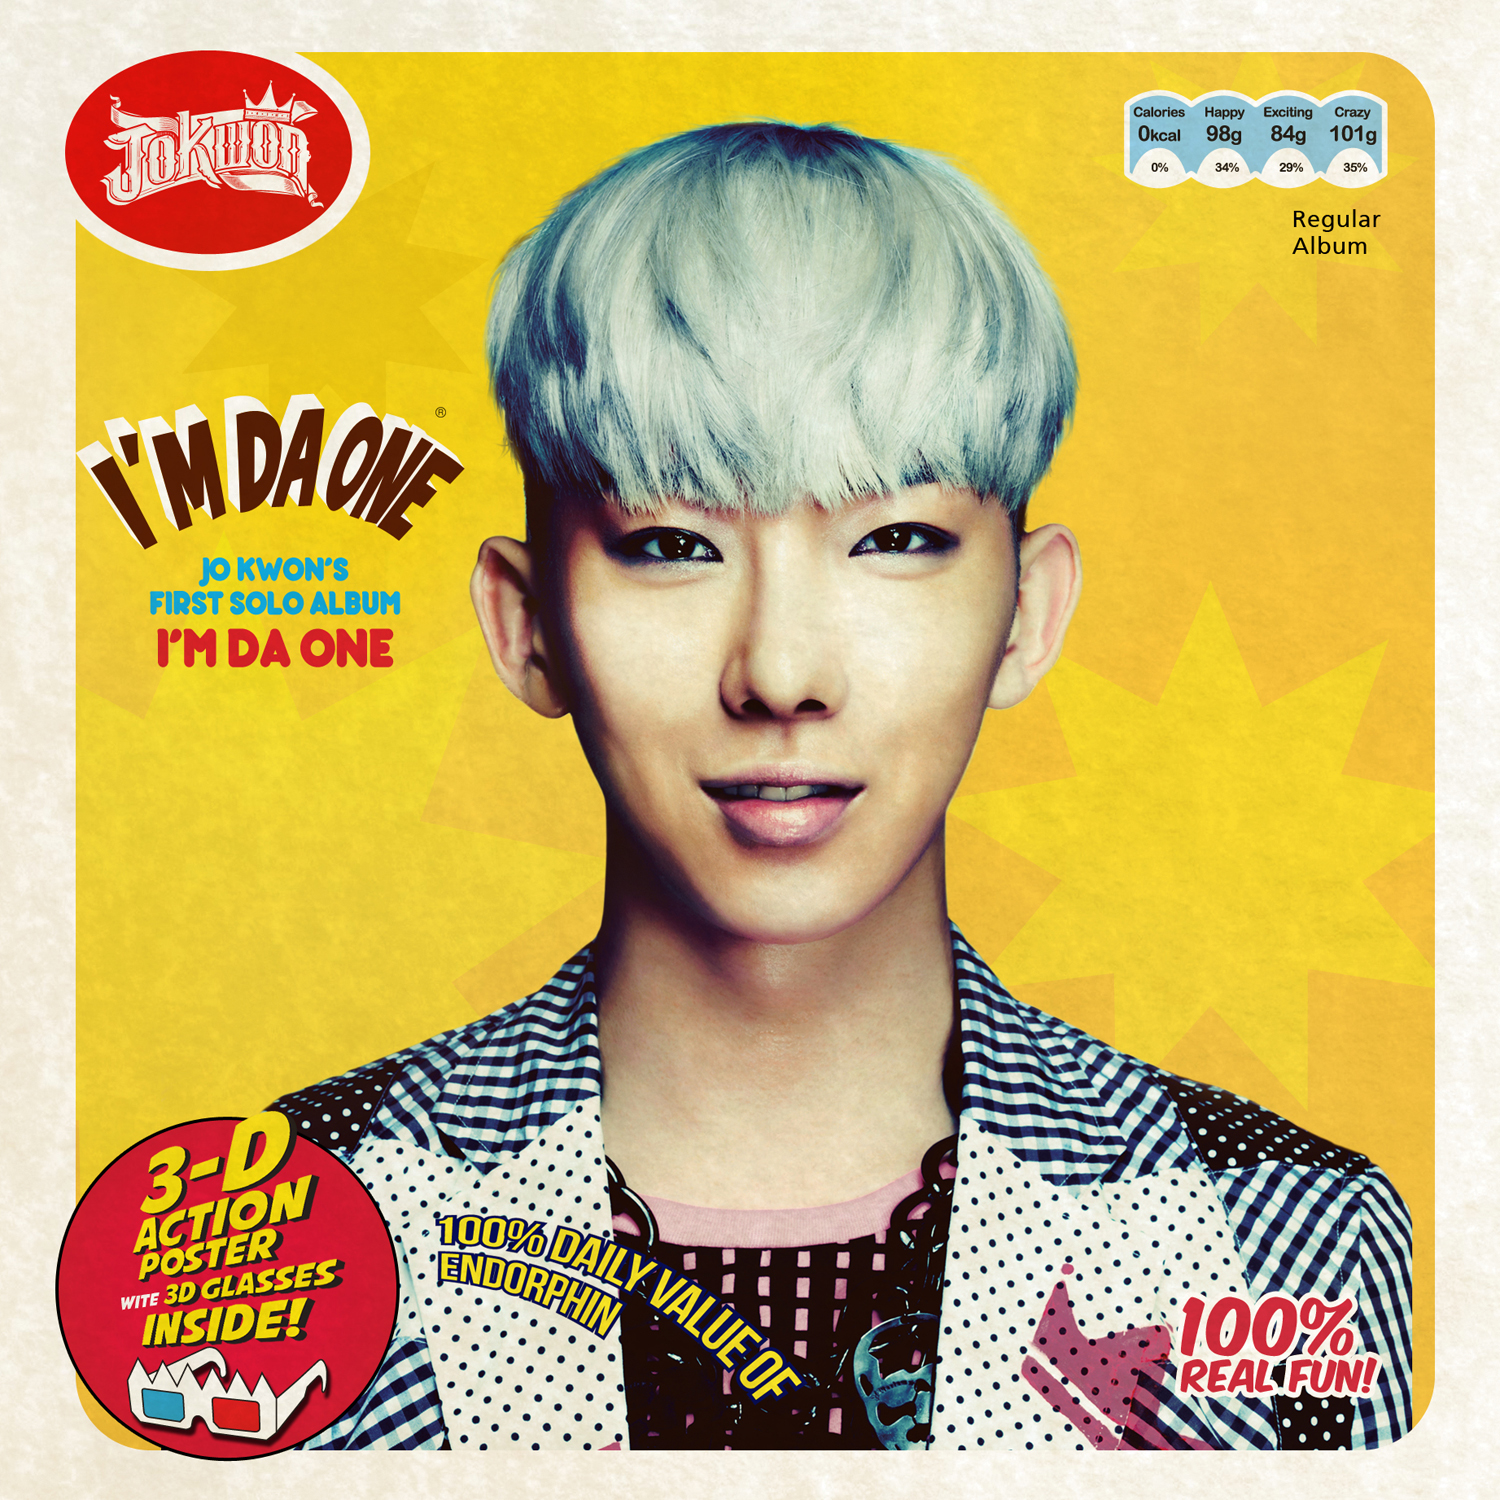 [Contest] Win Passes to Jo Kwon's Video Conference in Malaysia